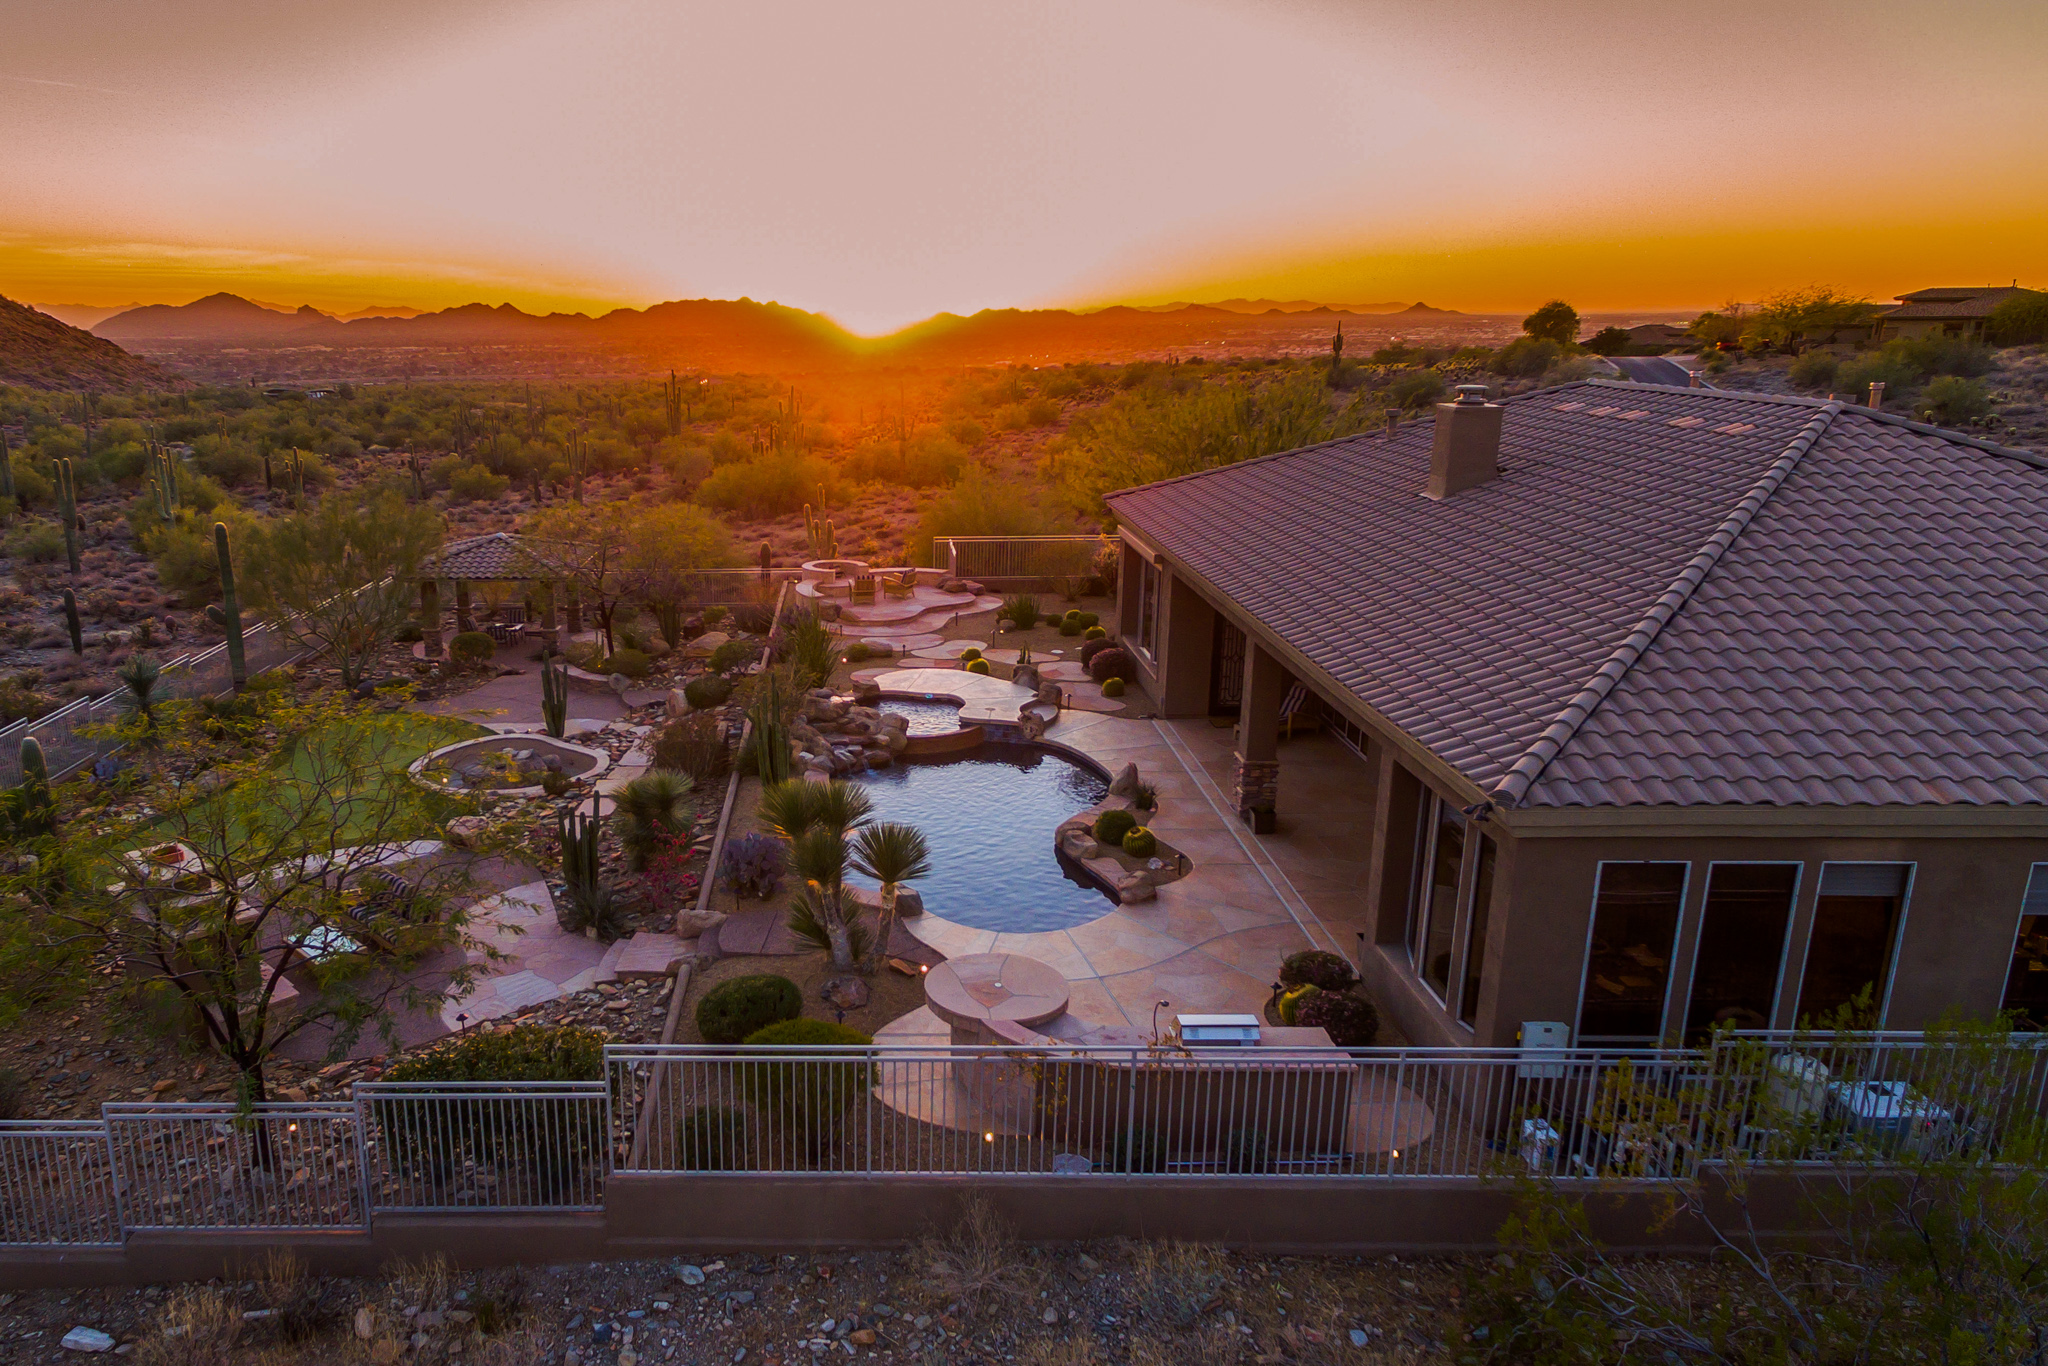 Sunset photo of Arizona Home